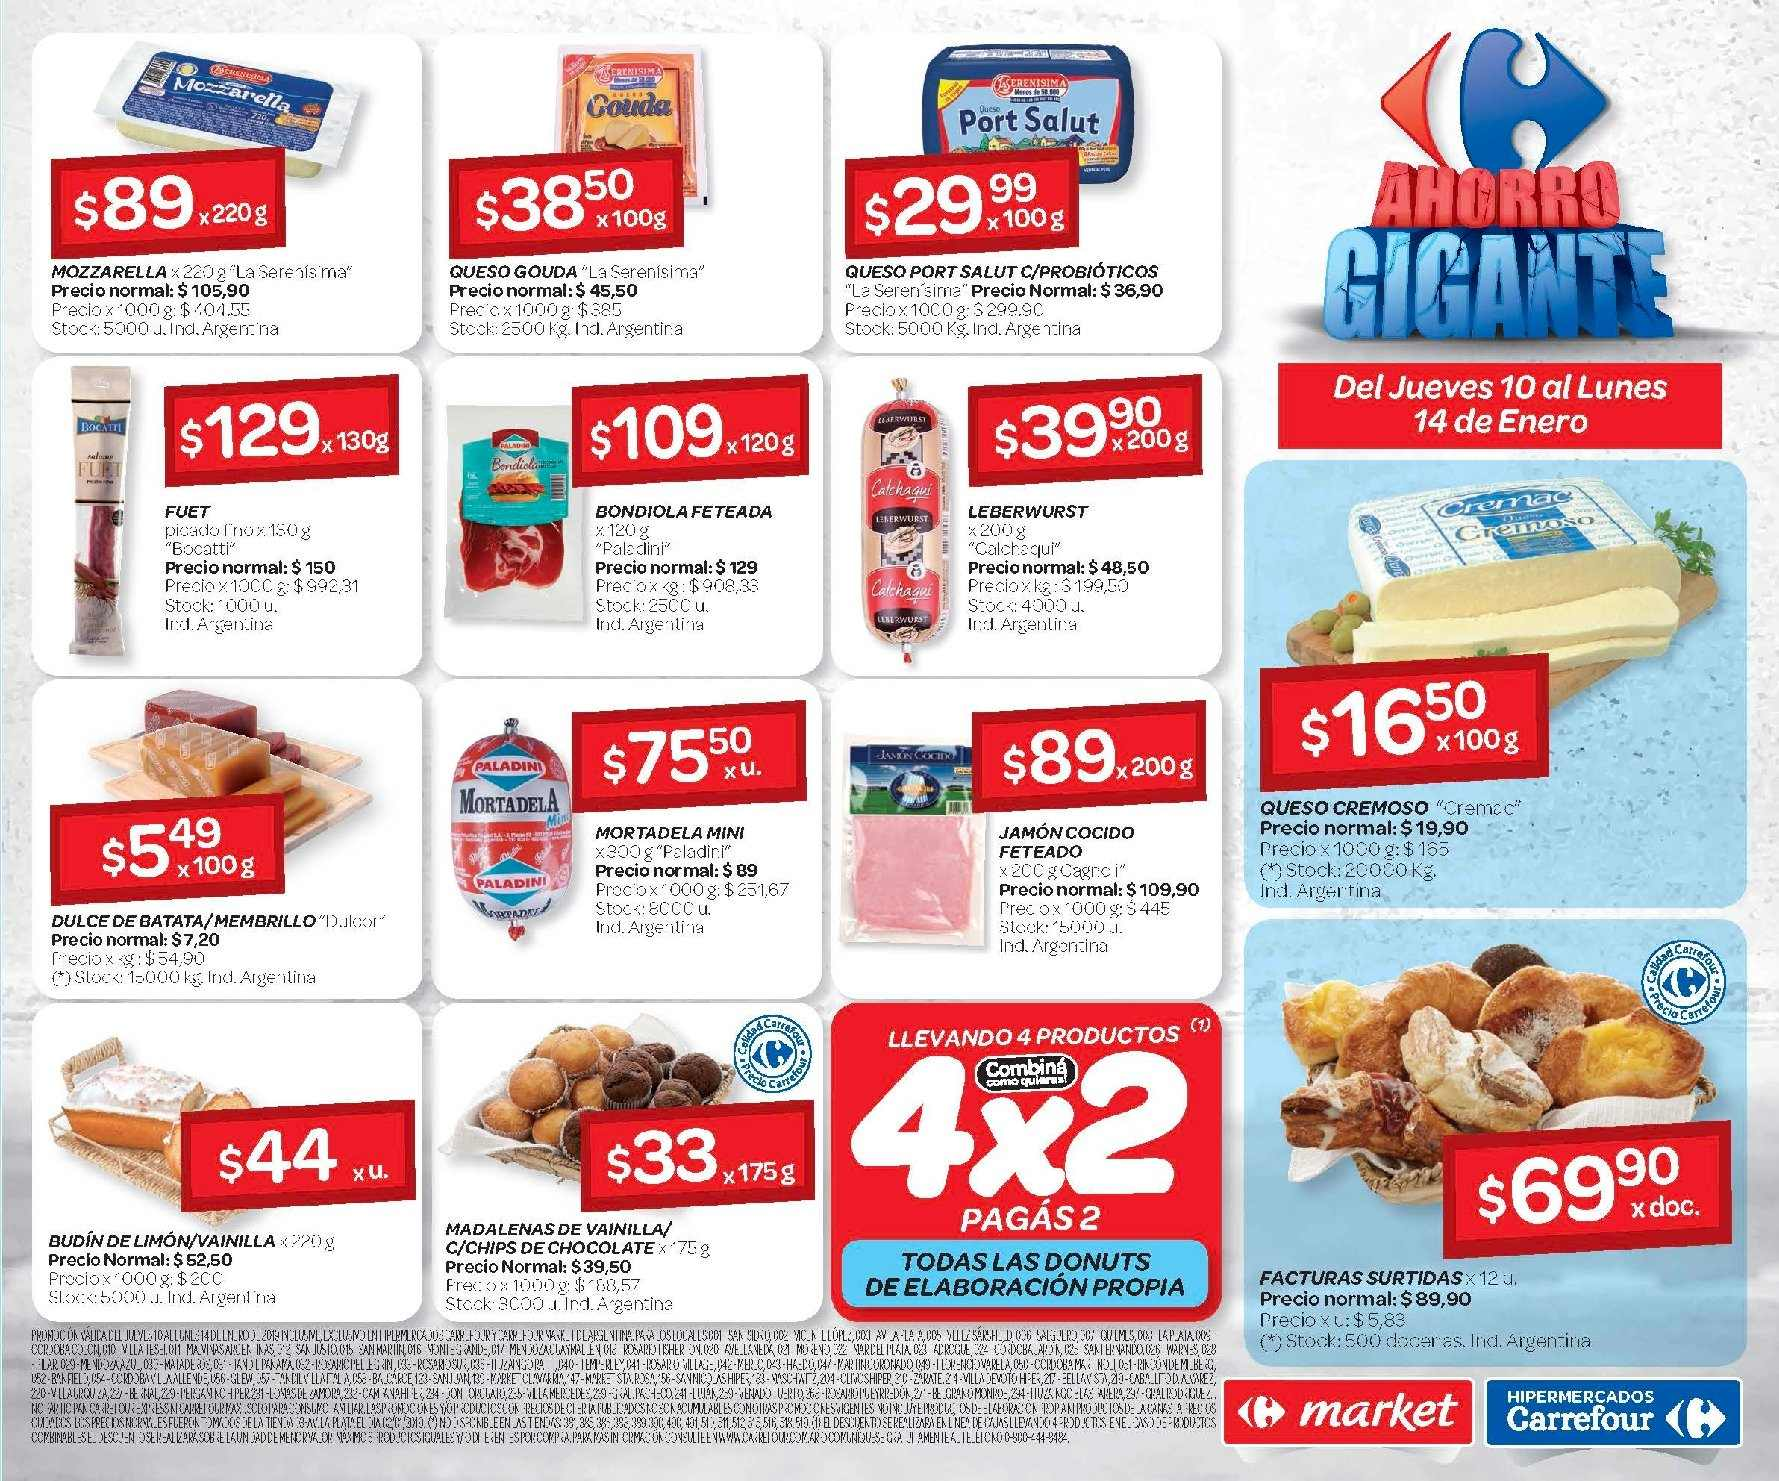 Folleto actual Carrefour - 10.1.2019 - 14.1.2019 - Ventas - queso ed1ab10bb036